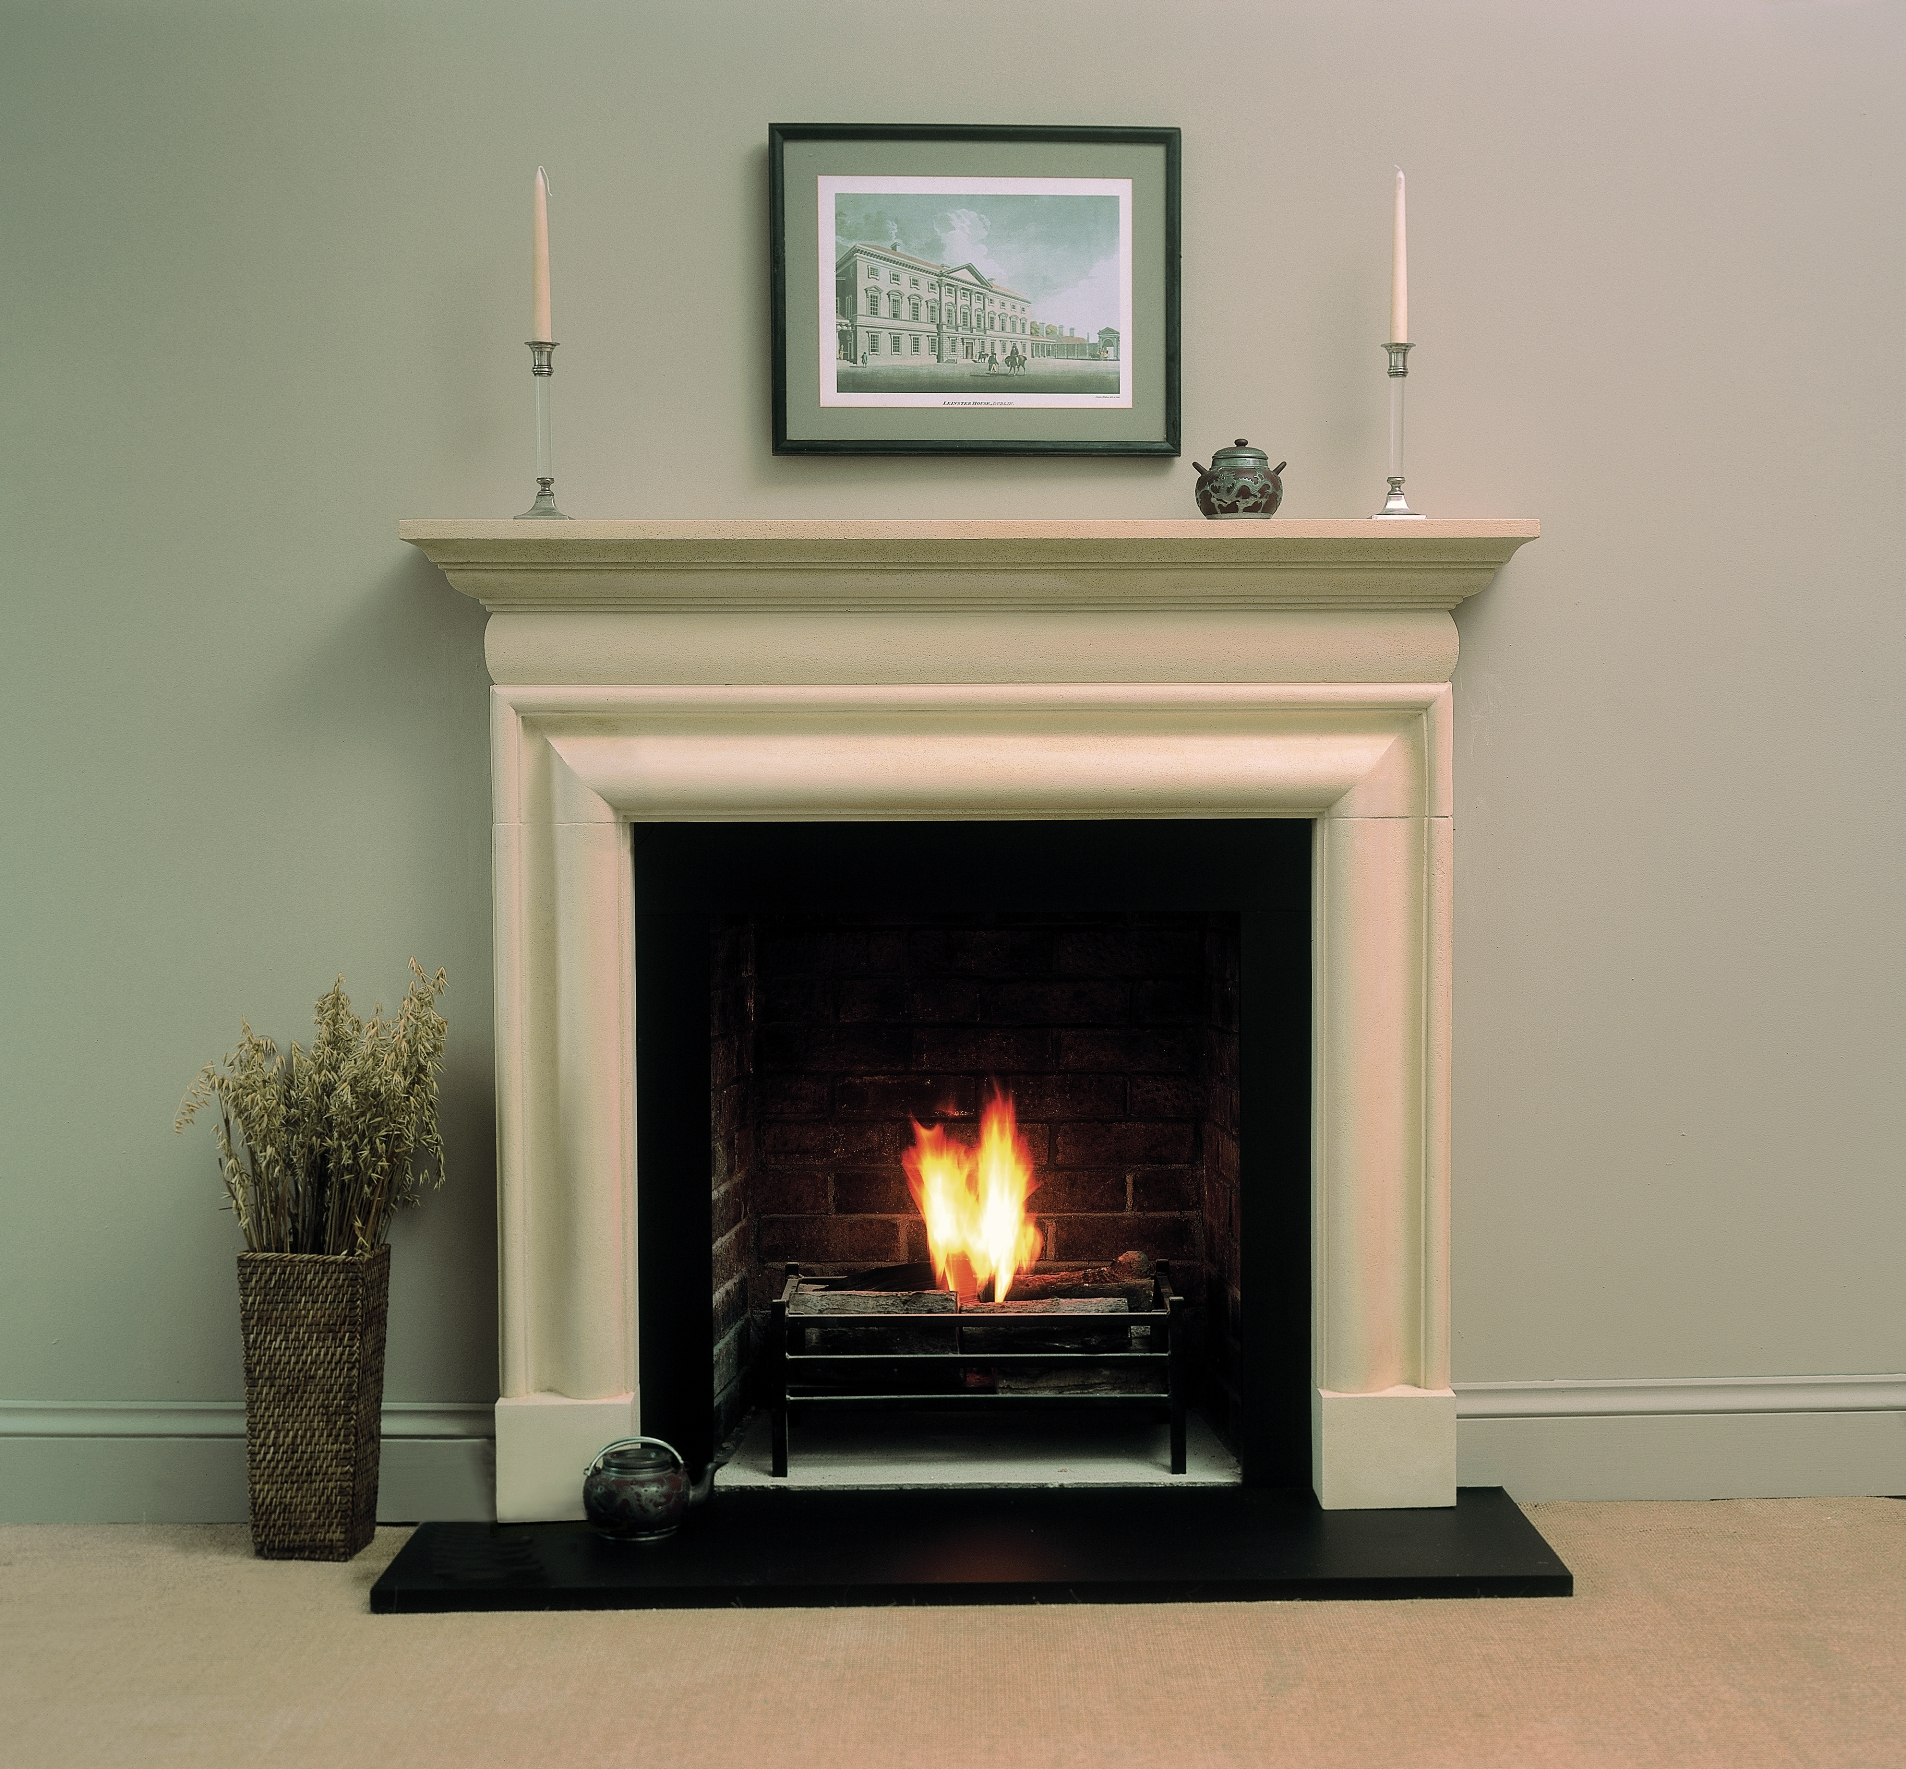 rudloe cast and natural stone fireplaces and flooring made in